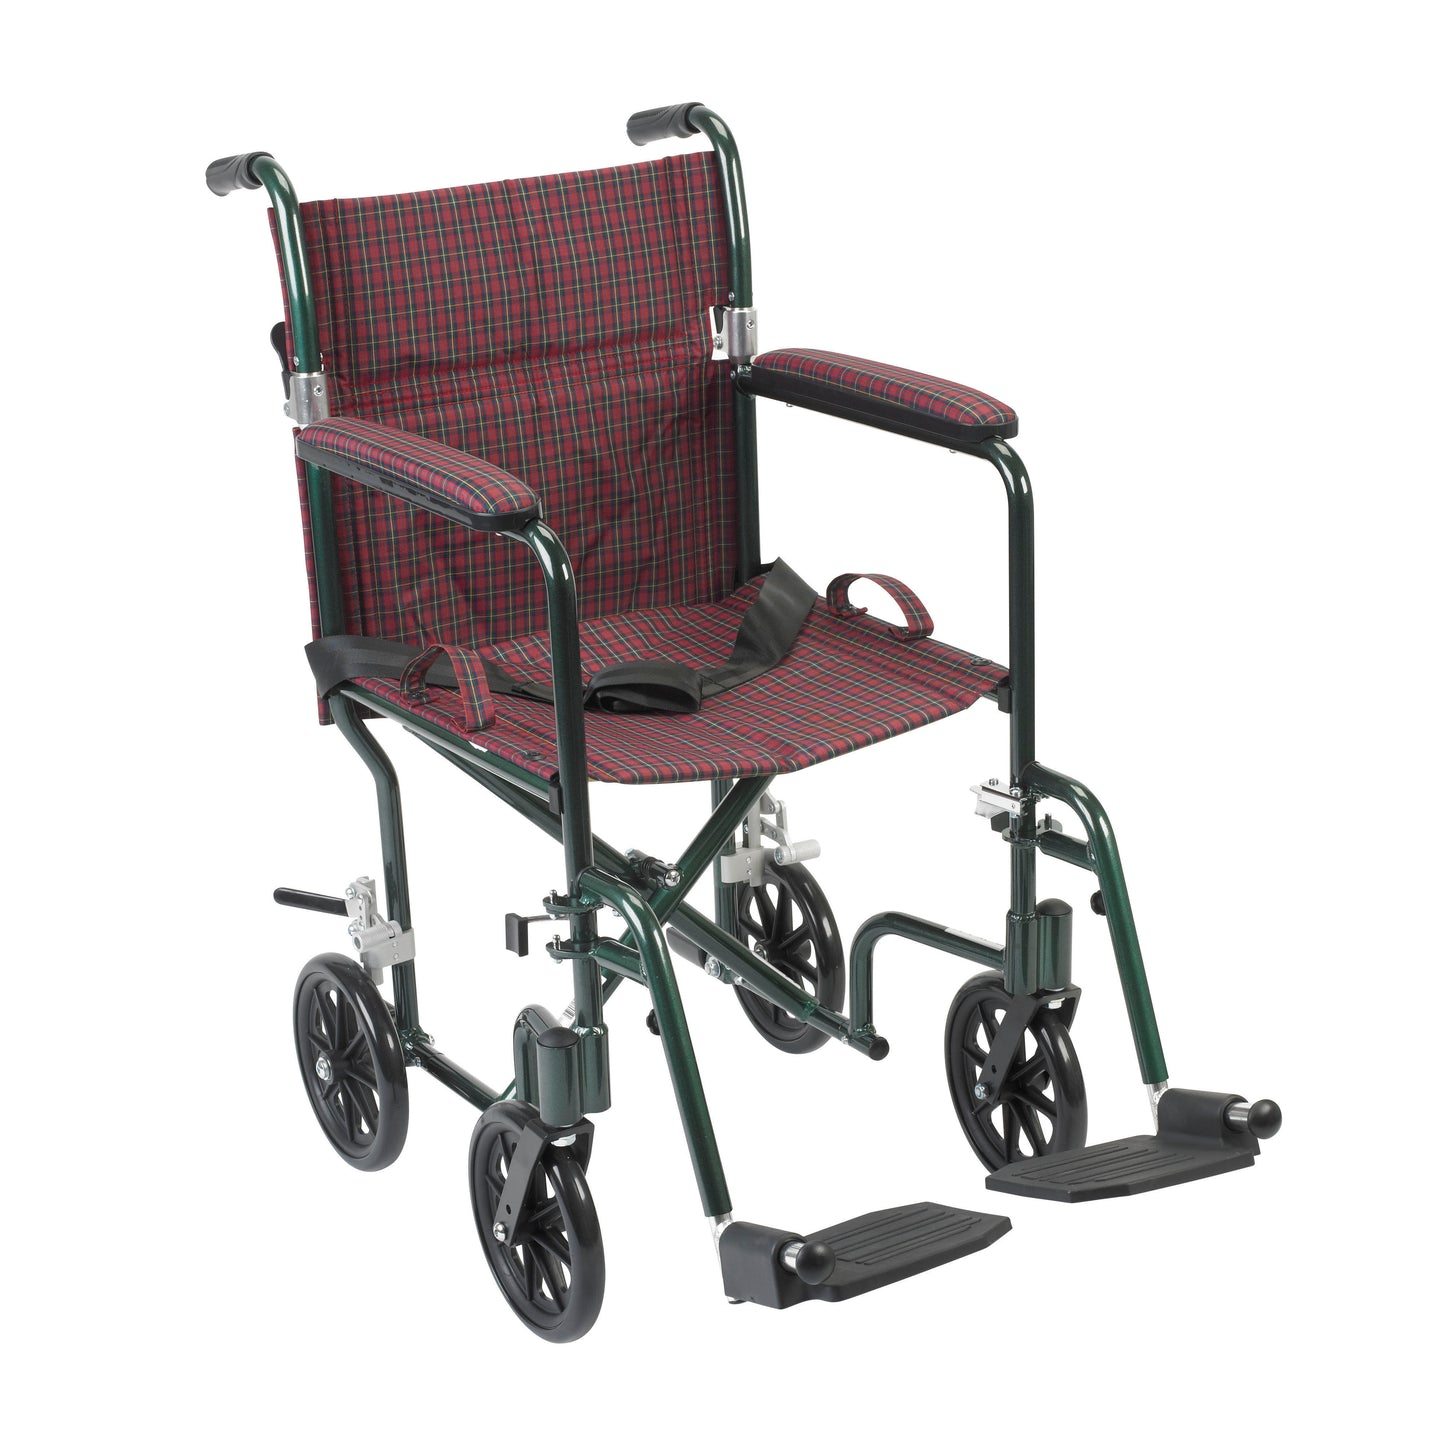 Drive Flyweight Lightweight Folding Transport Wheelchair- 19